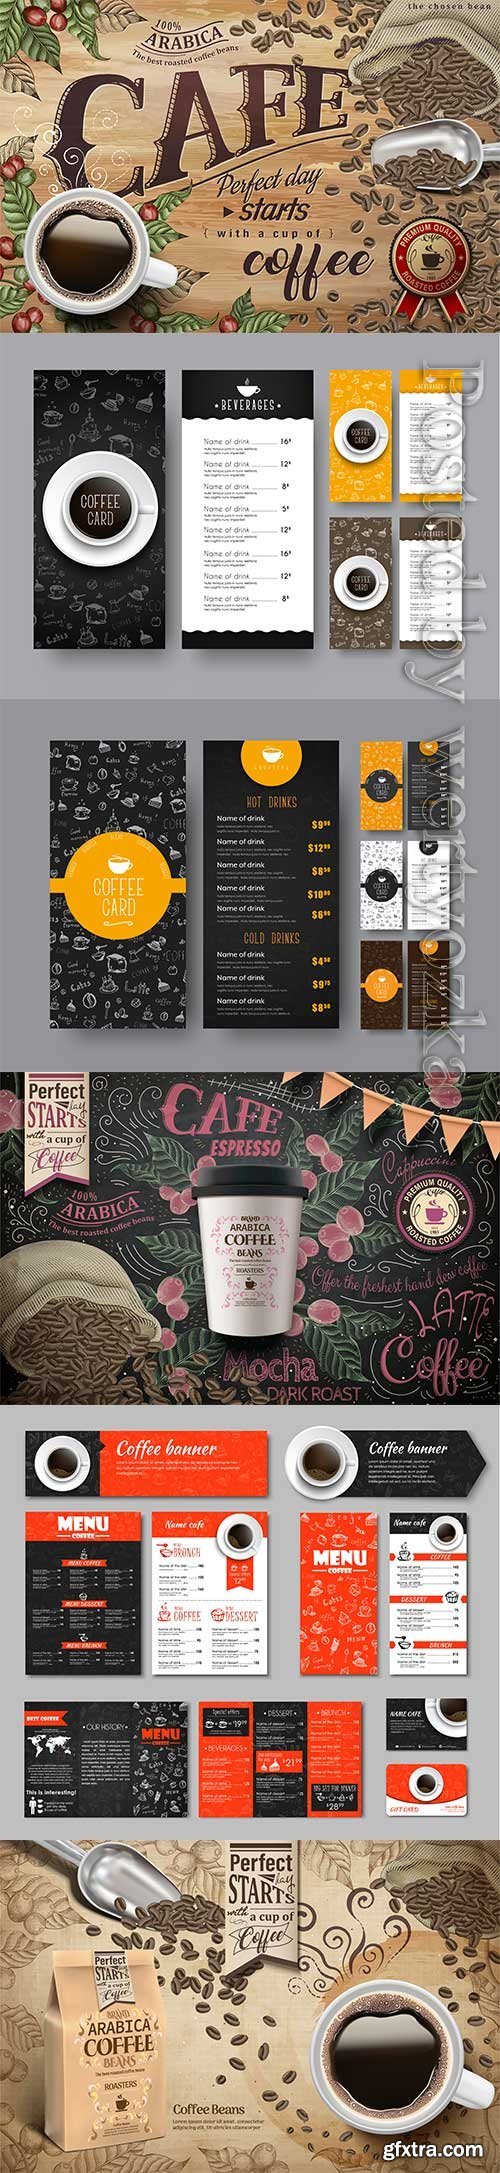 Template of the coffee menu for a cafe or restaurant